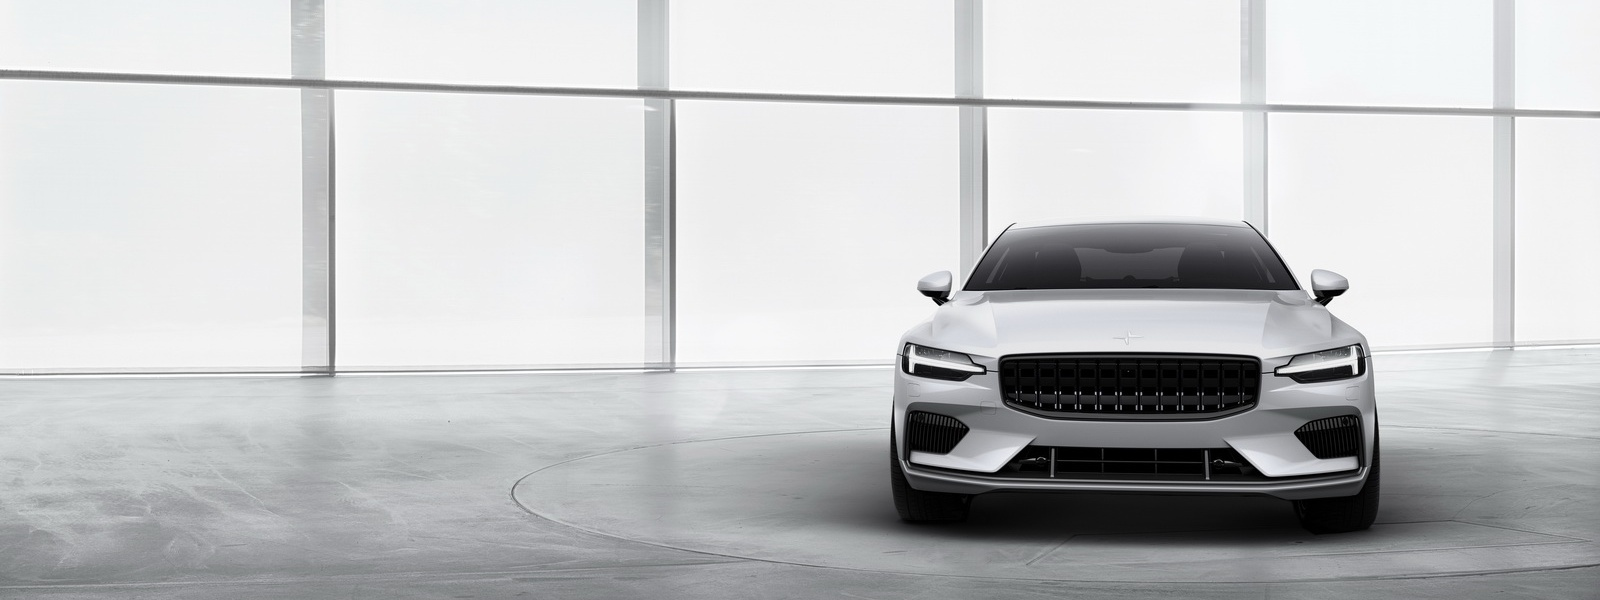 Polestar-1-Production-Increase-1.jpg